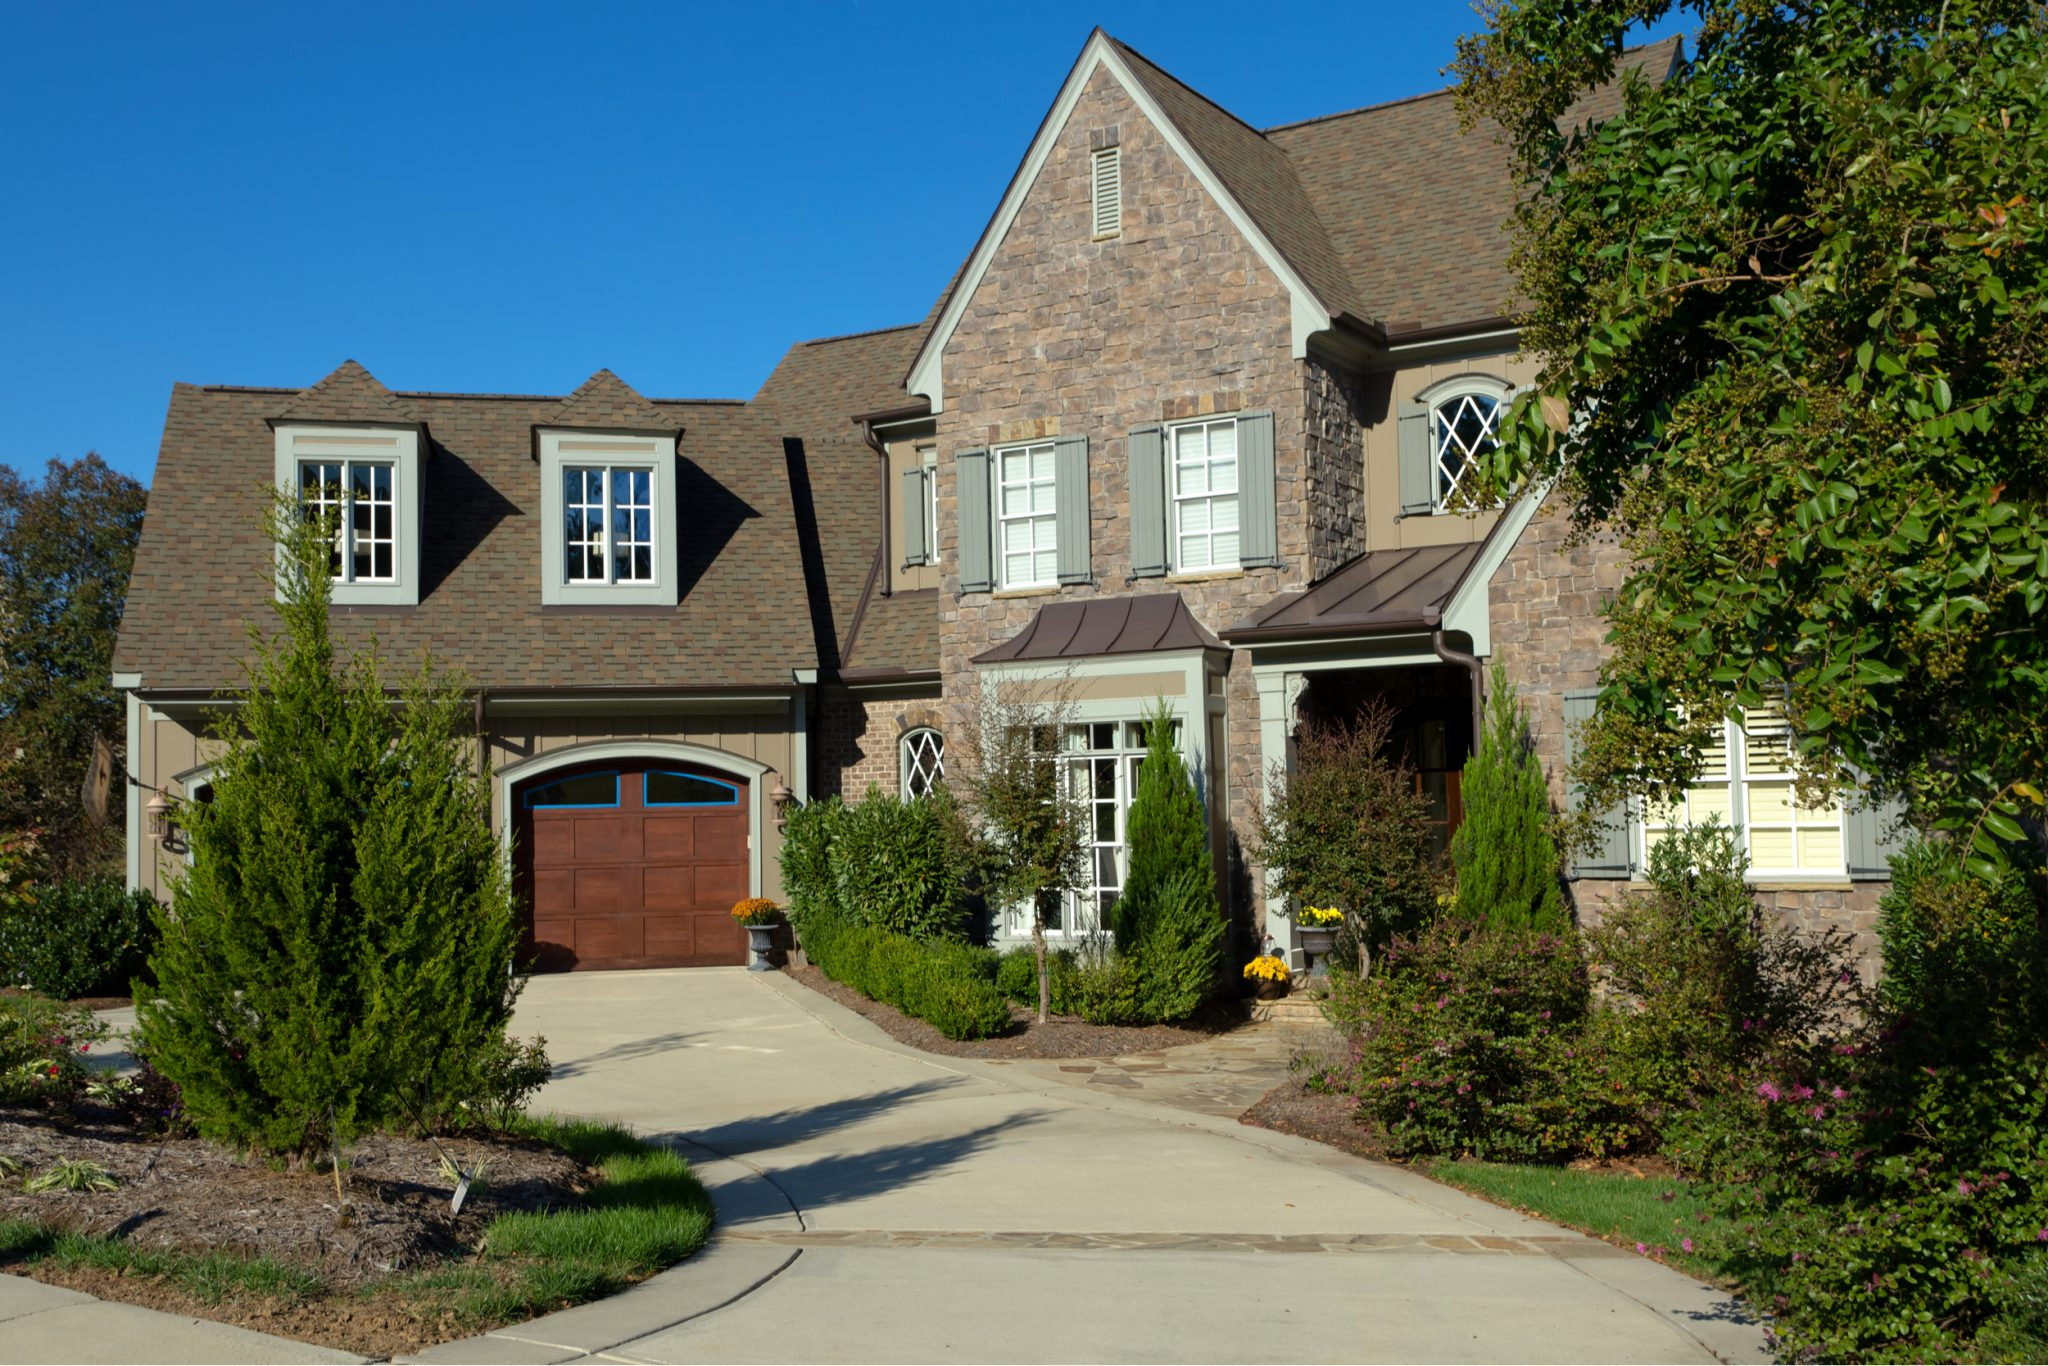 Driveway Designs for French Style Homes Stamped Concrete